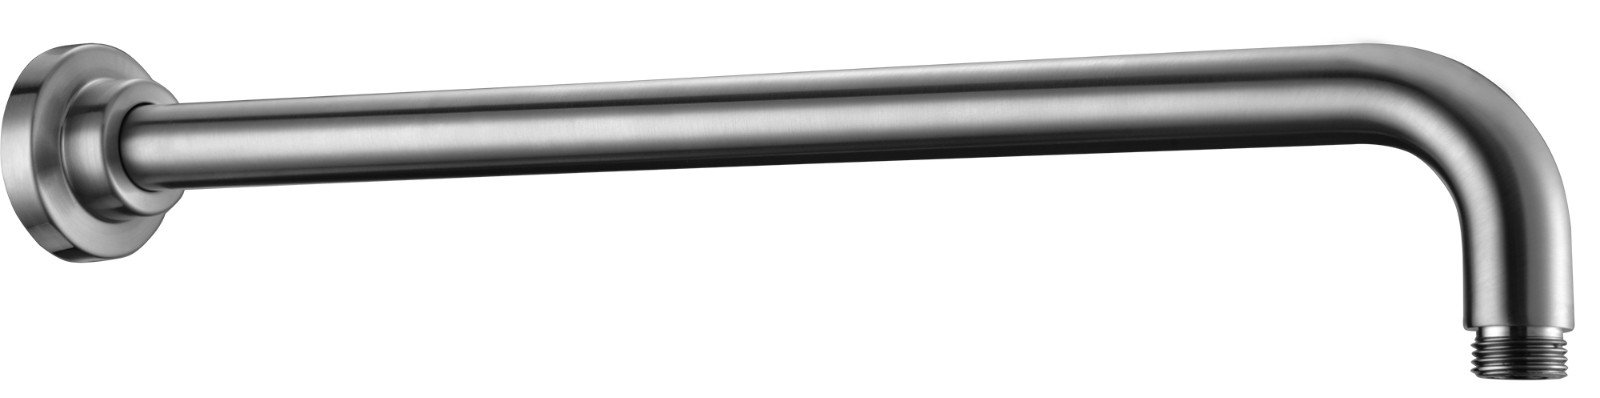 ALFI brand AB20WR-BN Round Wall Mounted 20'' Shower Arm, Brushed Nickel